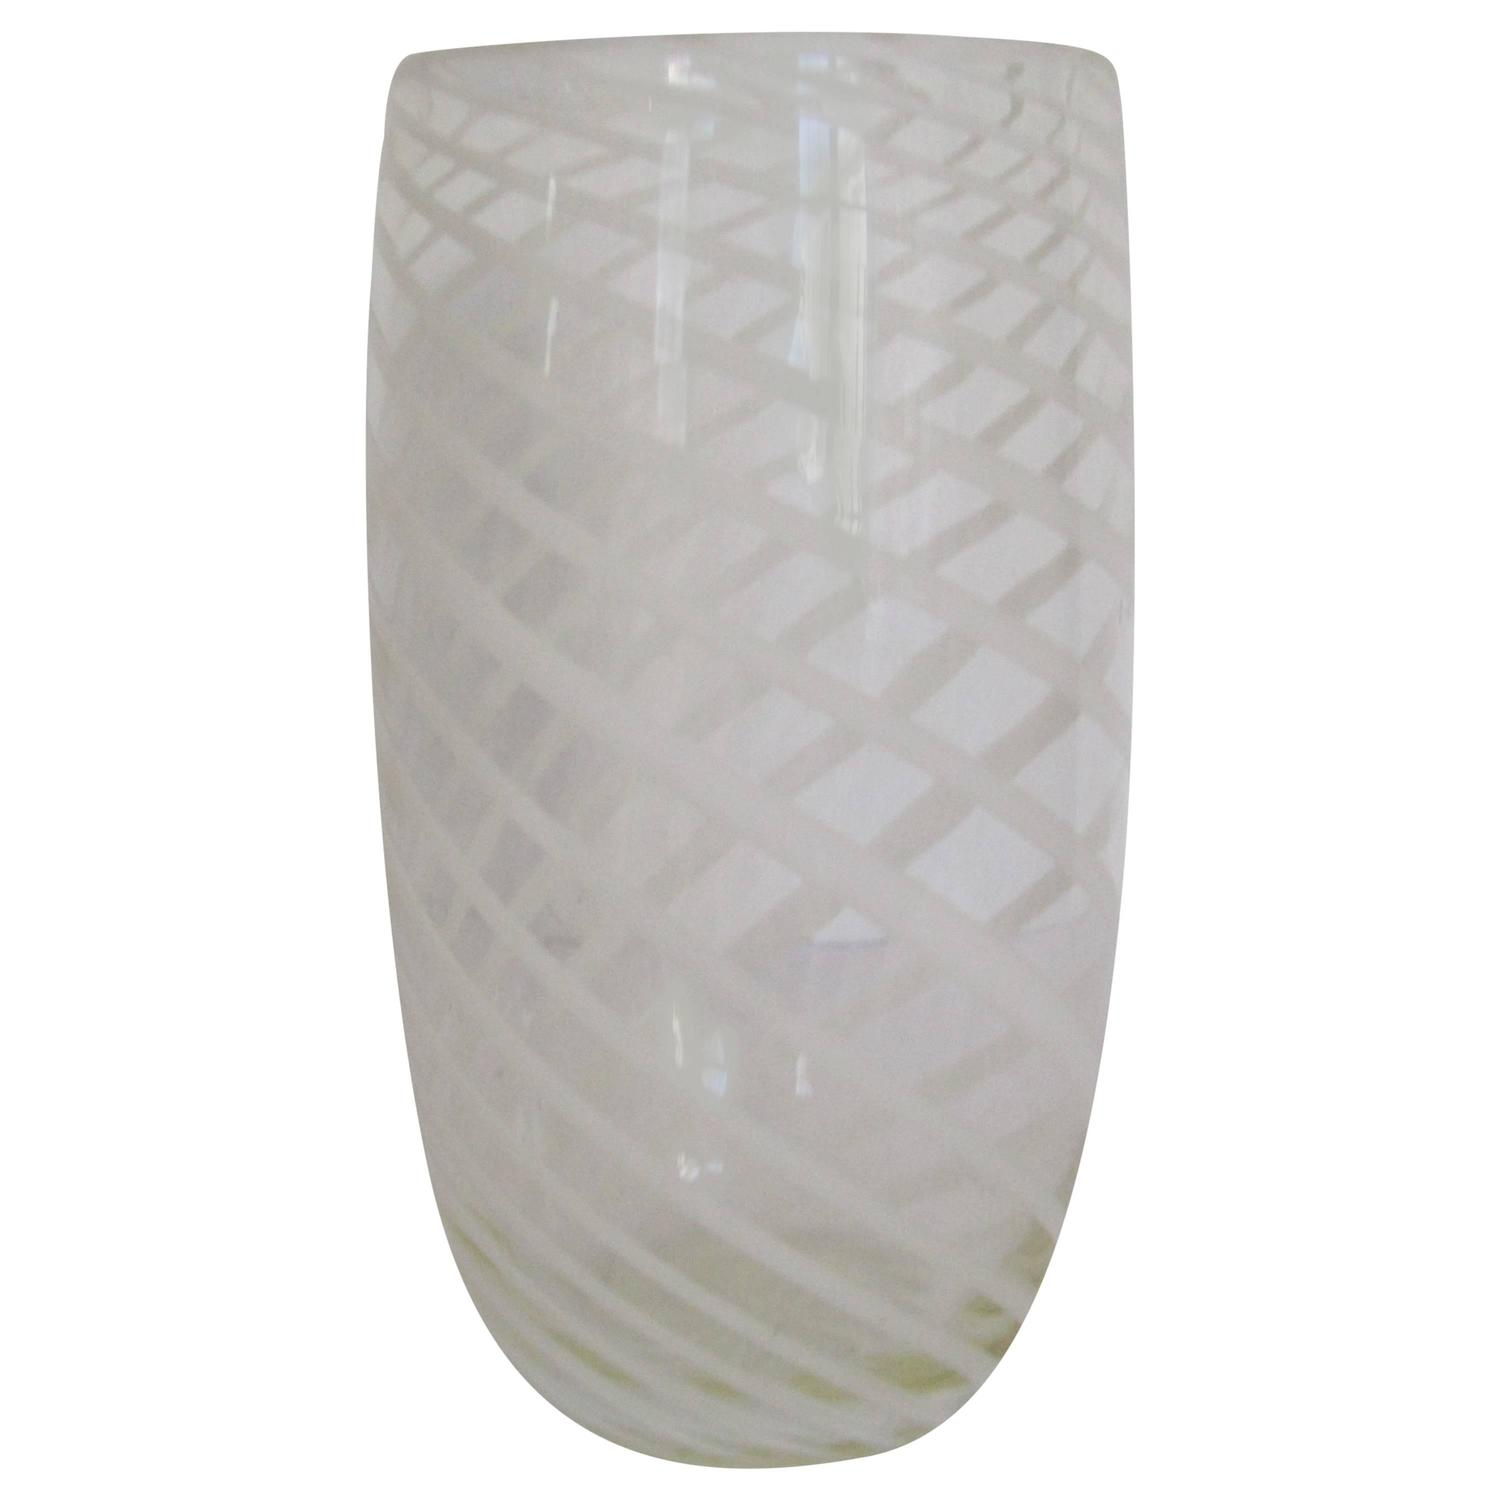 Jeff zimmerman glass vase designed exclusively for tiffany and co clear art glass vase with white ribbon design in the style of barovier and toso reviewsmspy